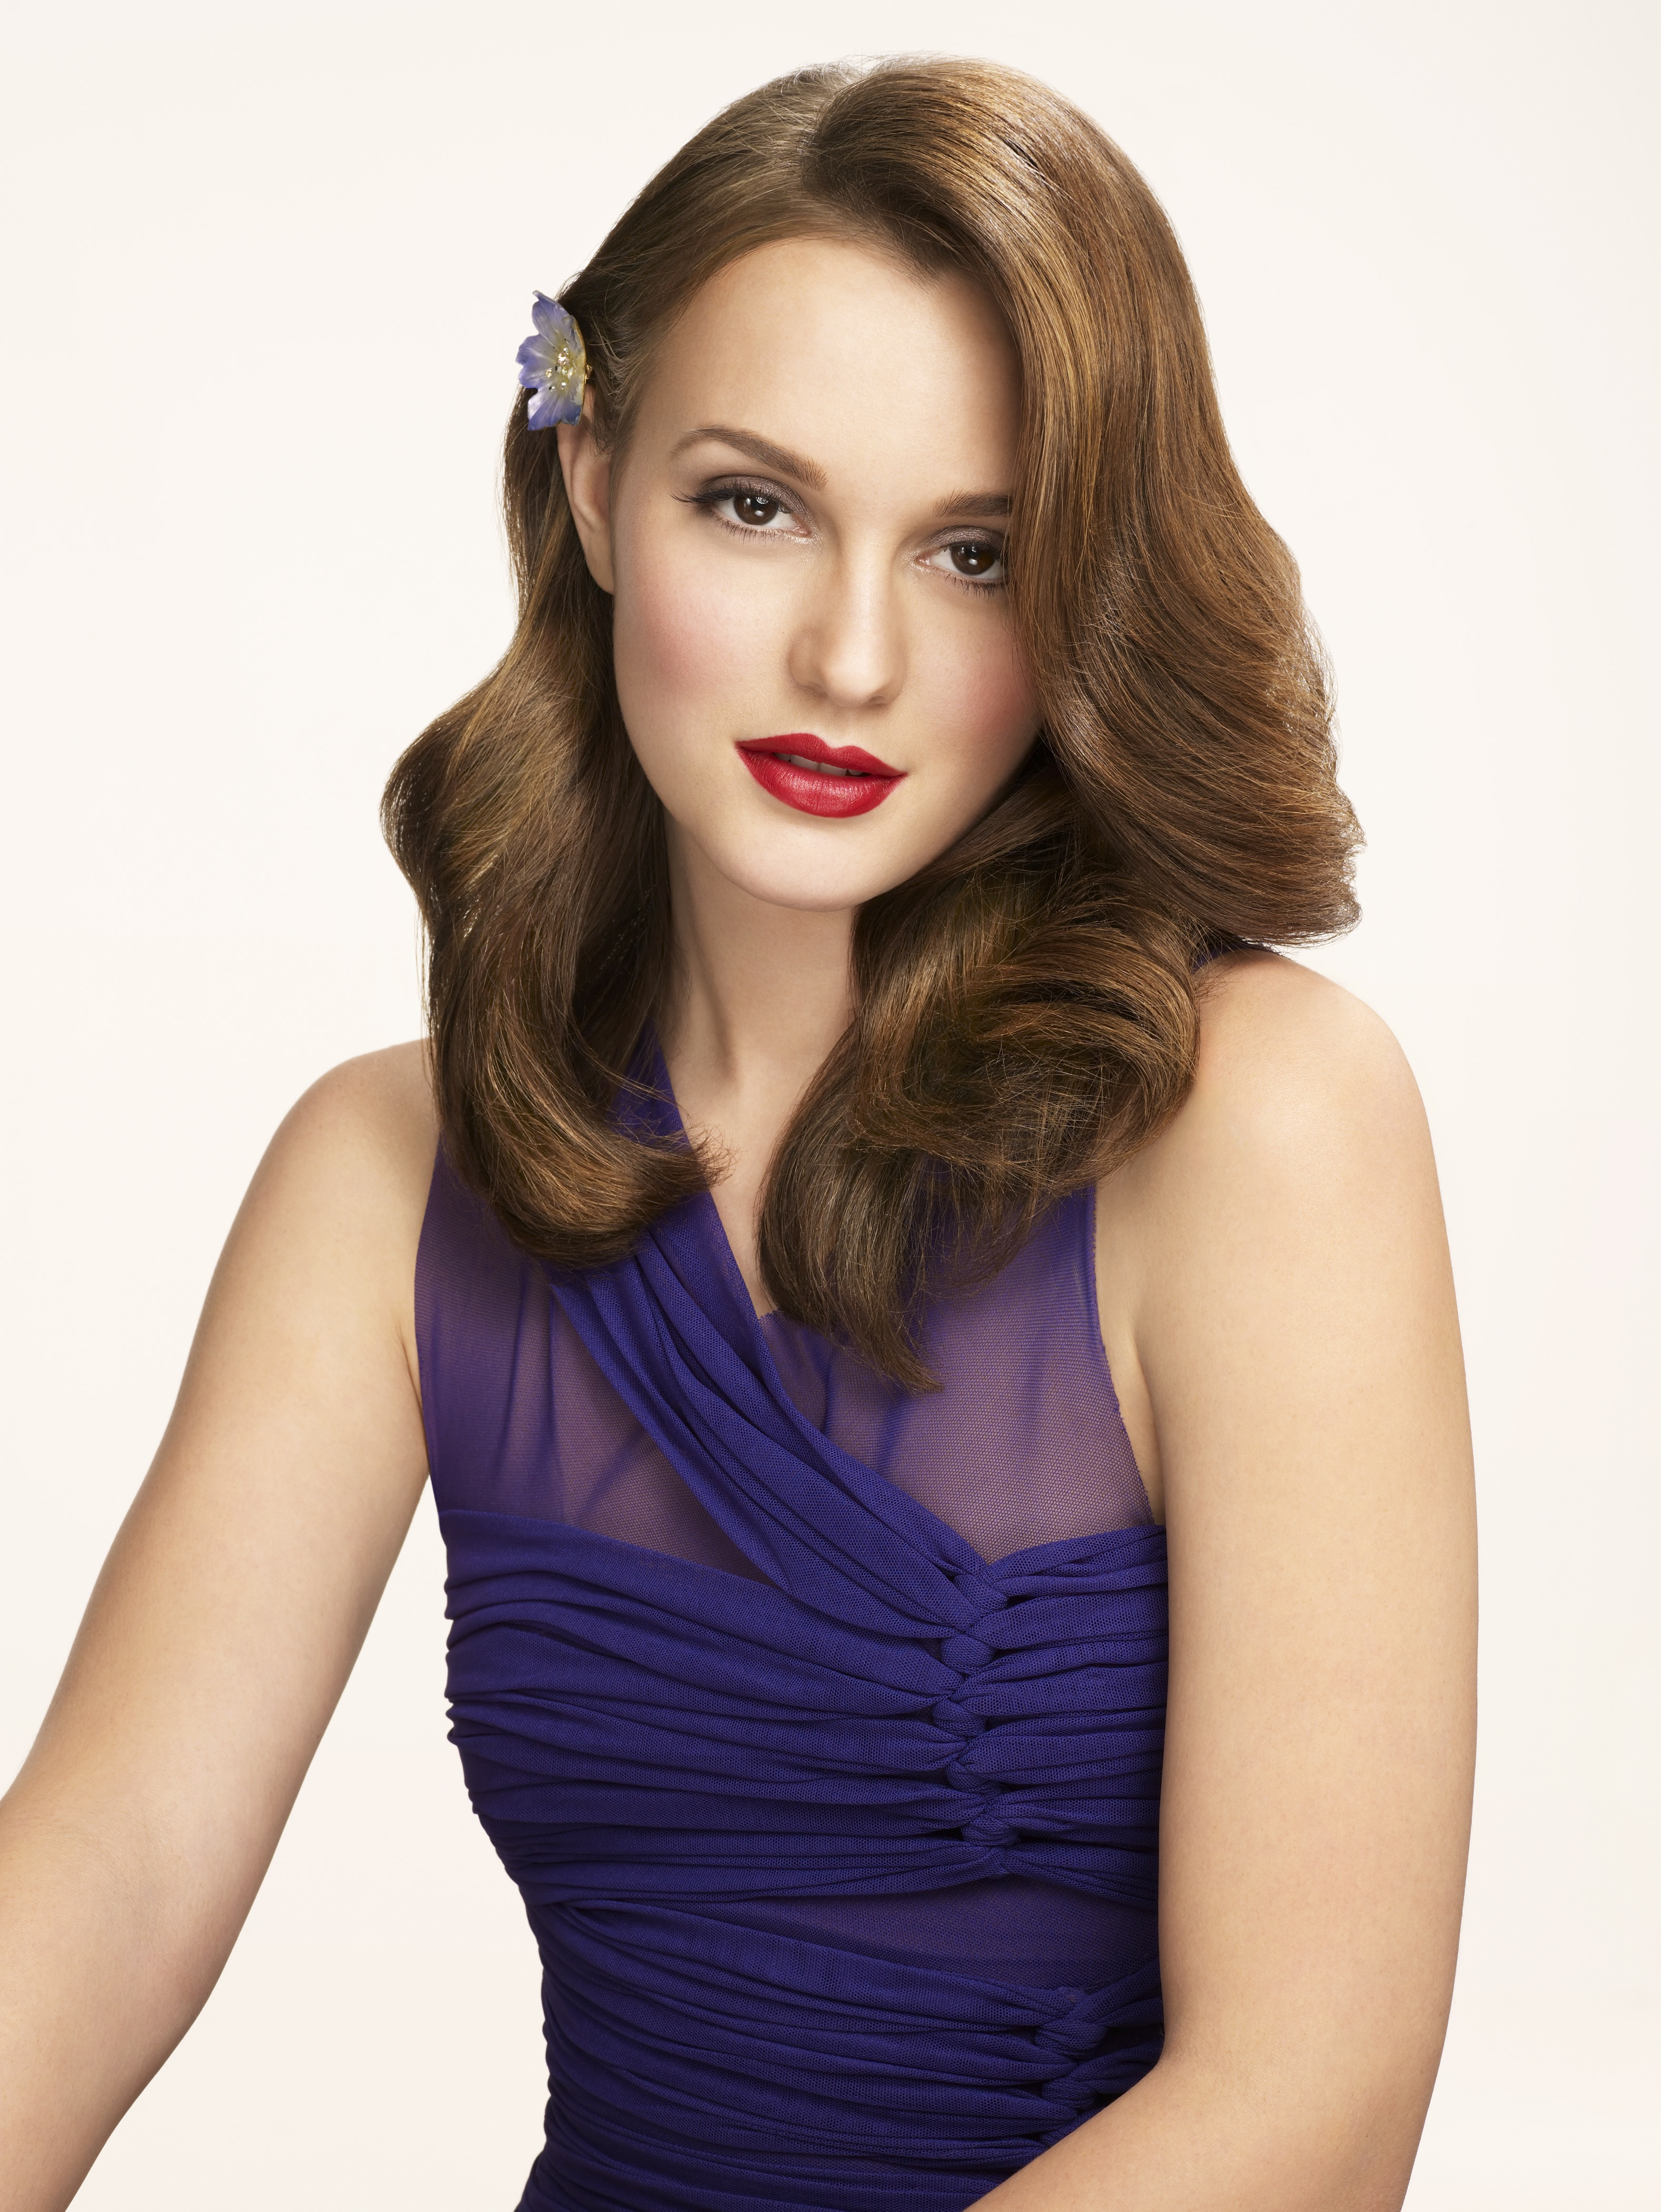 Canadian Beauty Magazines: Herbal Essences Announces Partnership With Leighton